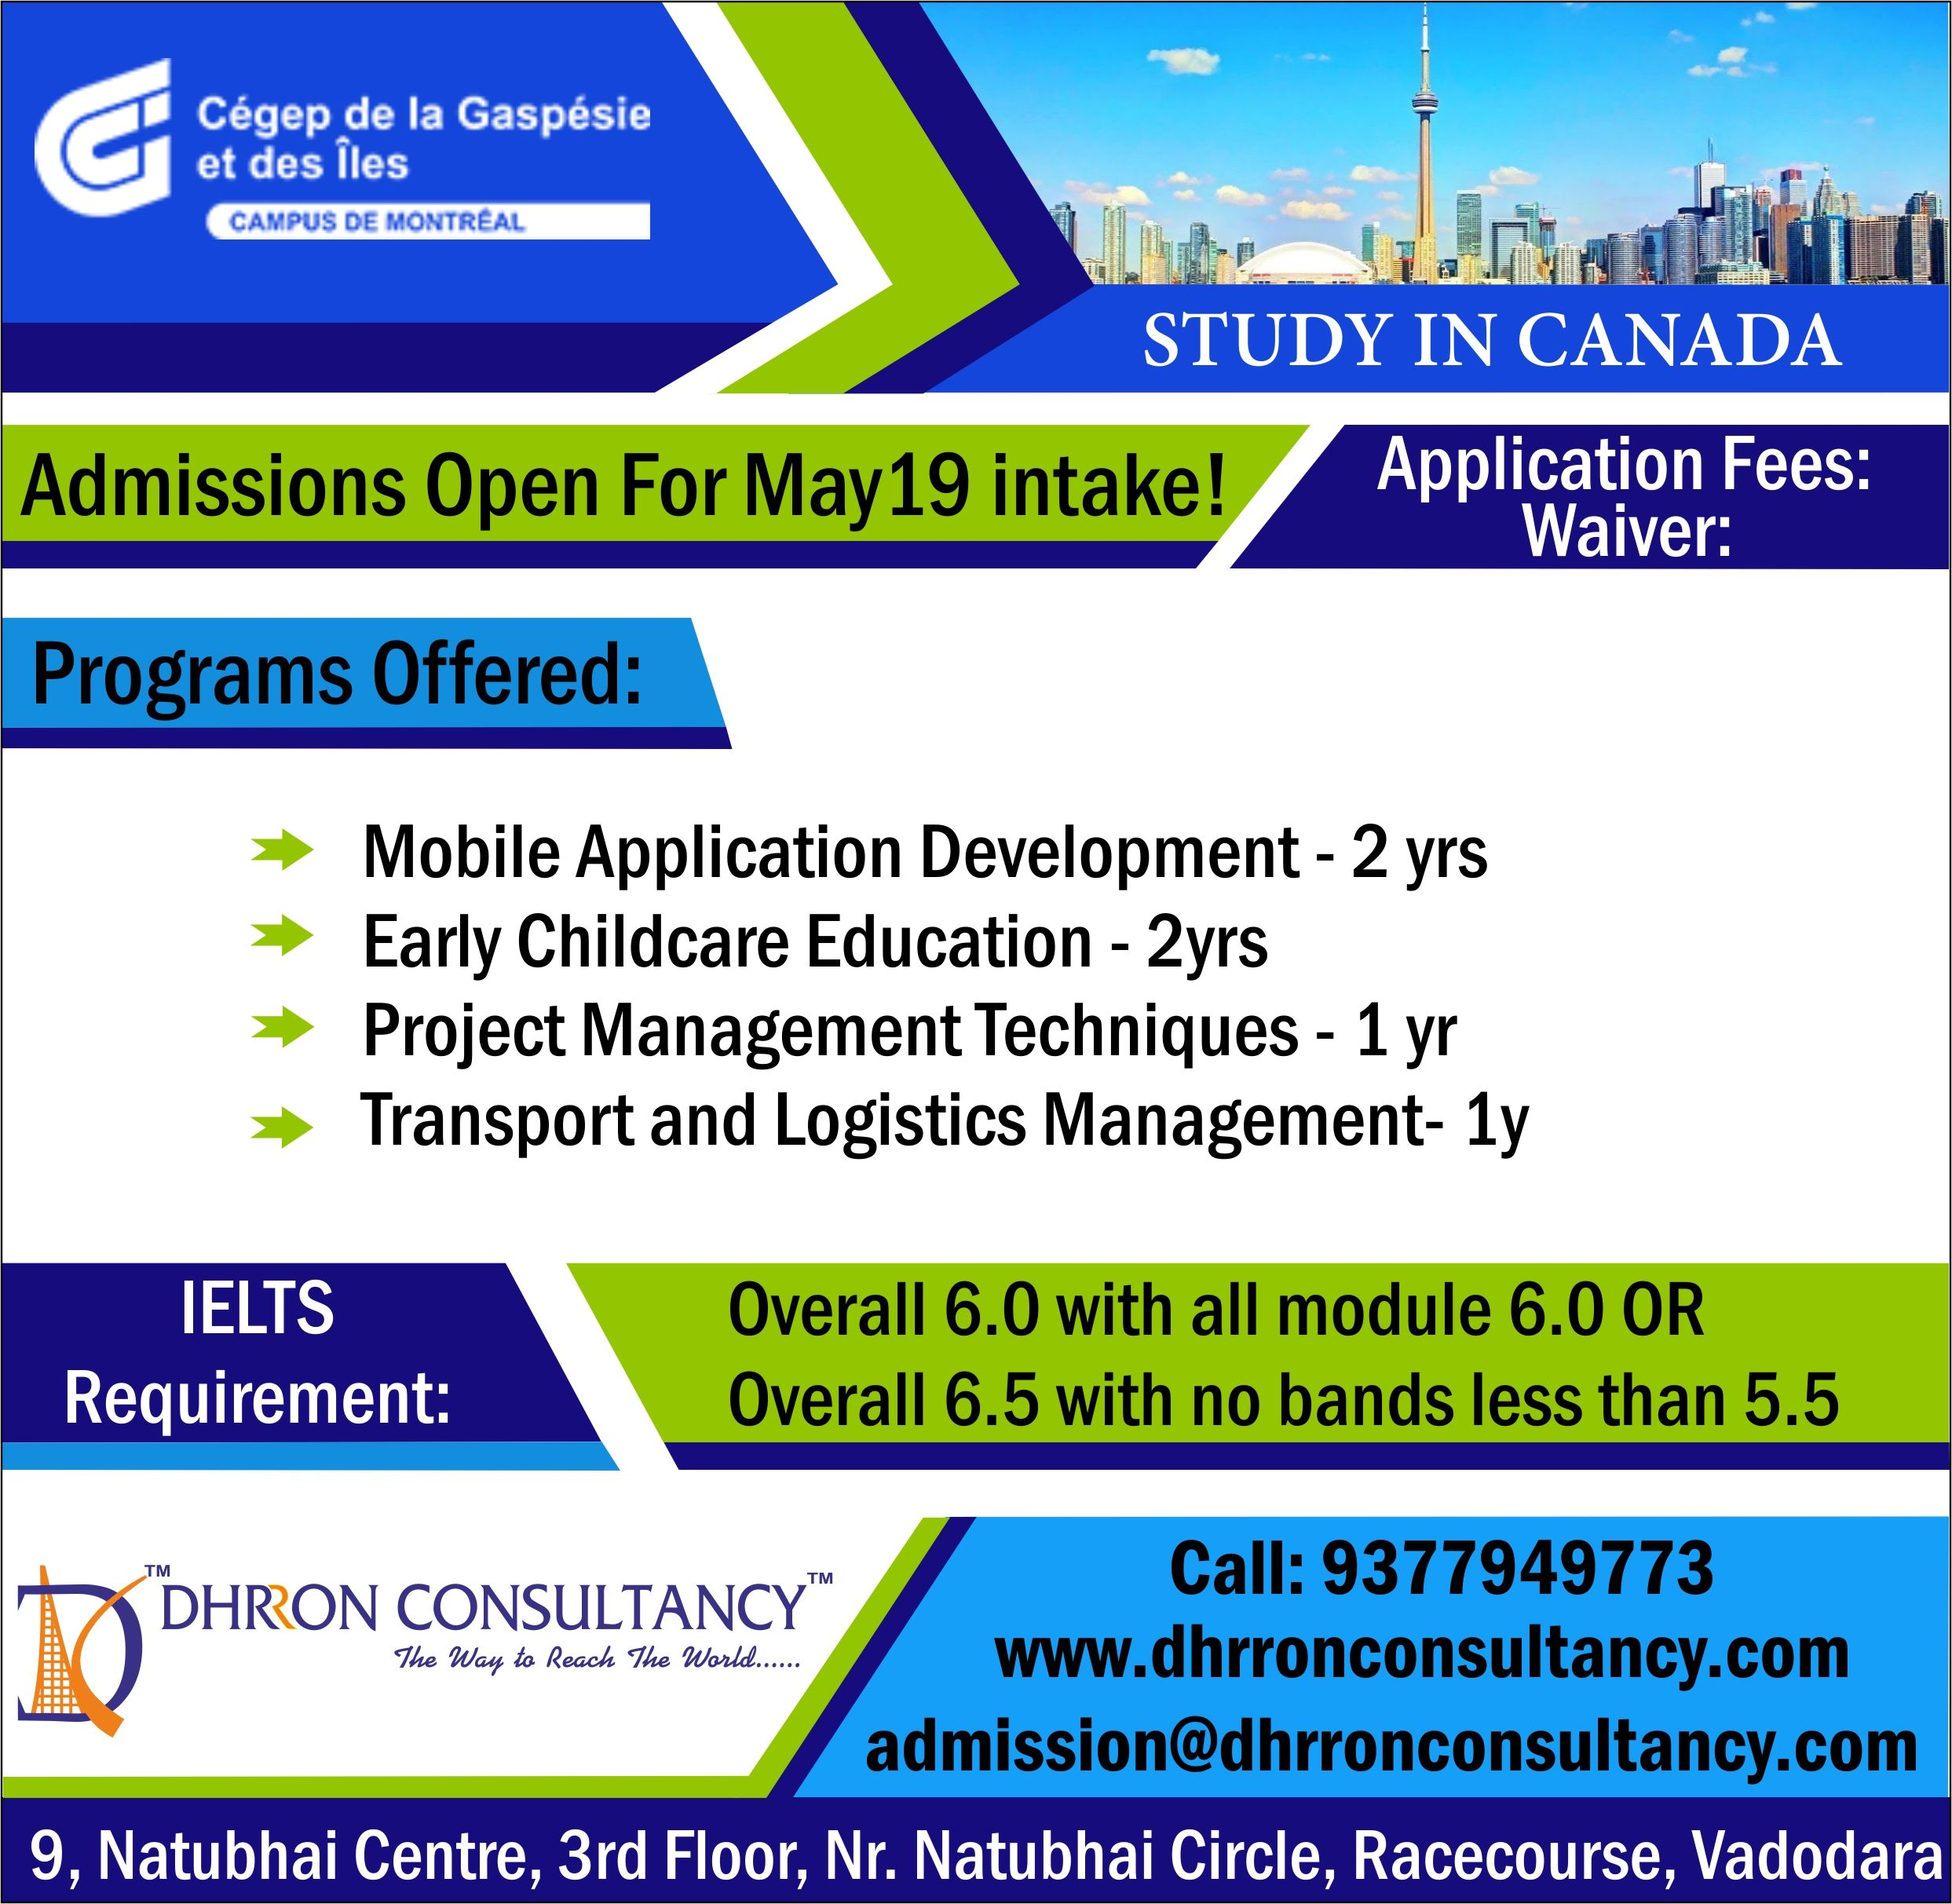 Do you want to study in Canada?? Apply In Cégep de la